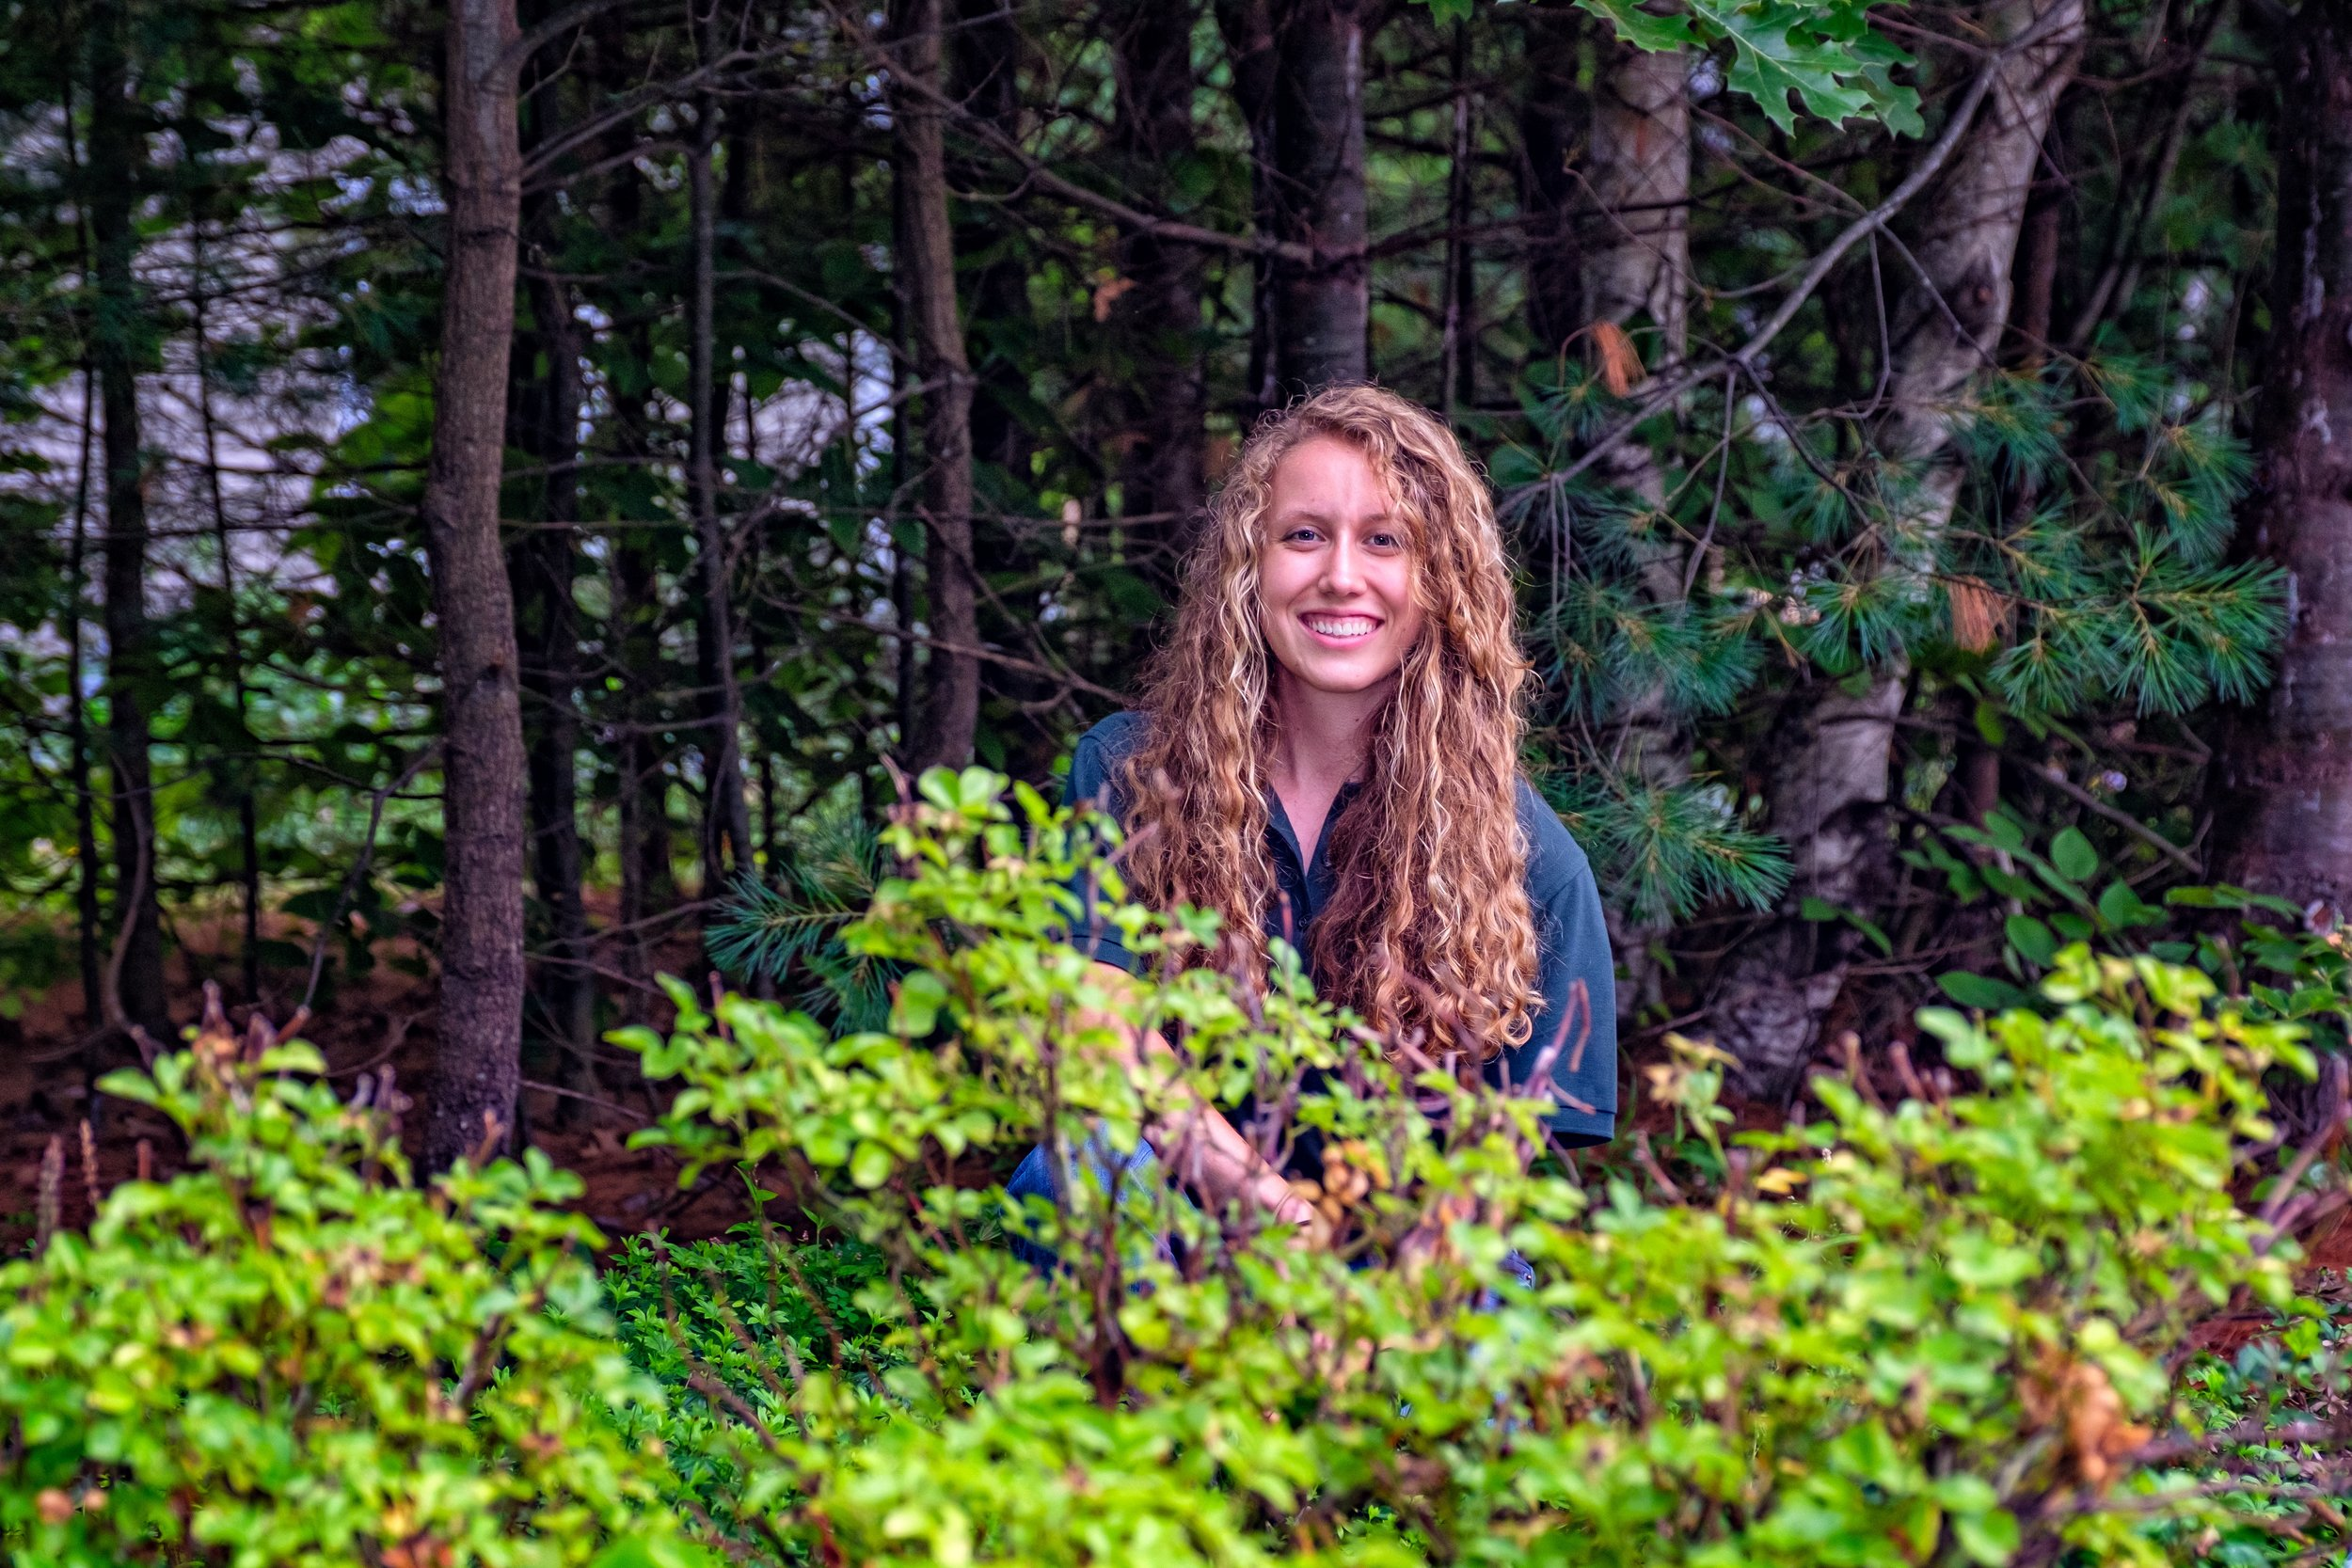 Leanne Blue - Assistant Director of Fine GardeningLeanne is a 2018 graduate of UMass Amherst, where she received her B.S. in Landscape Design. She joined the PAI team in Summer of 2018, working in both PAI's Fine Gardening and Design departments. Her love for nature, art, and design sparked her interest in Landscape Architecture.In her free time, Leanne enjoys drawing and hiking.lblue@pellettieriassoc.com